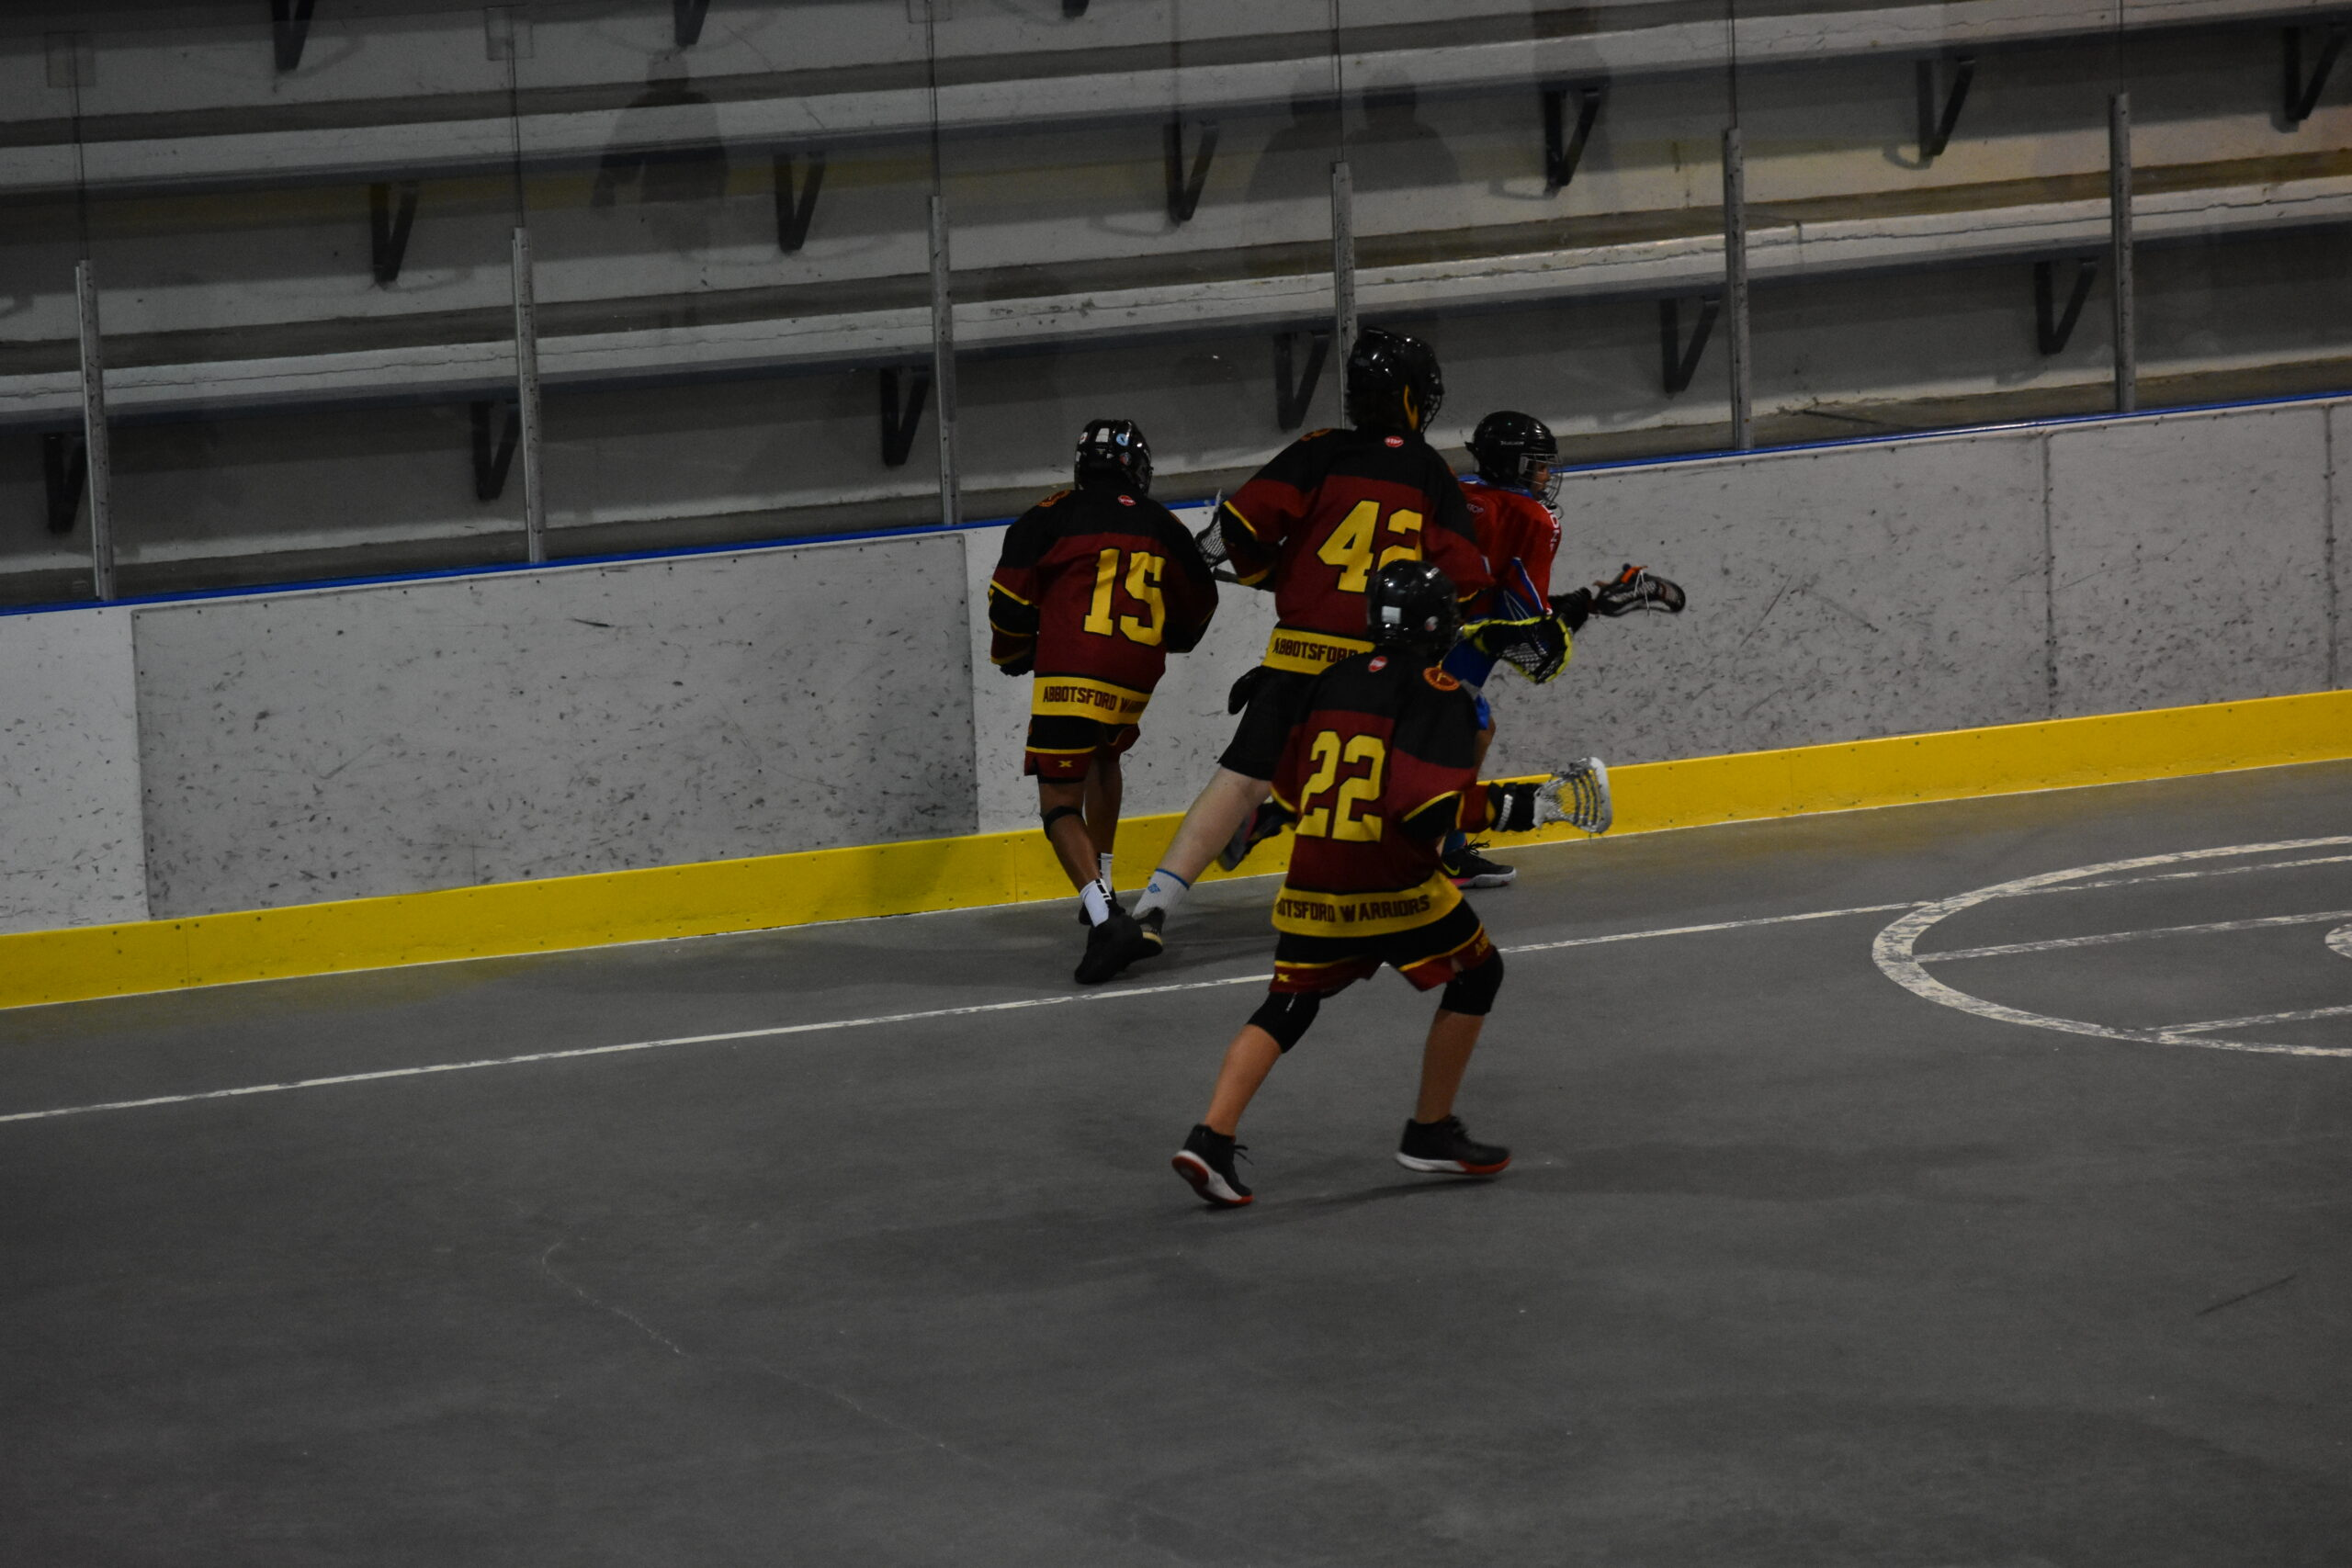 Abbotsford Warriors Lacrosse Players Running During a Game